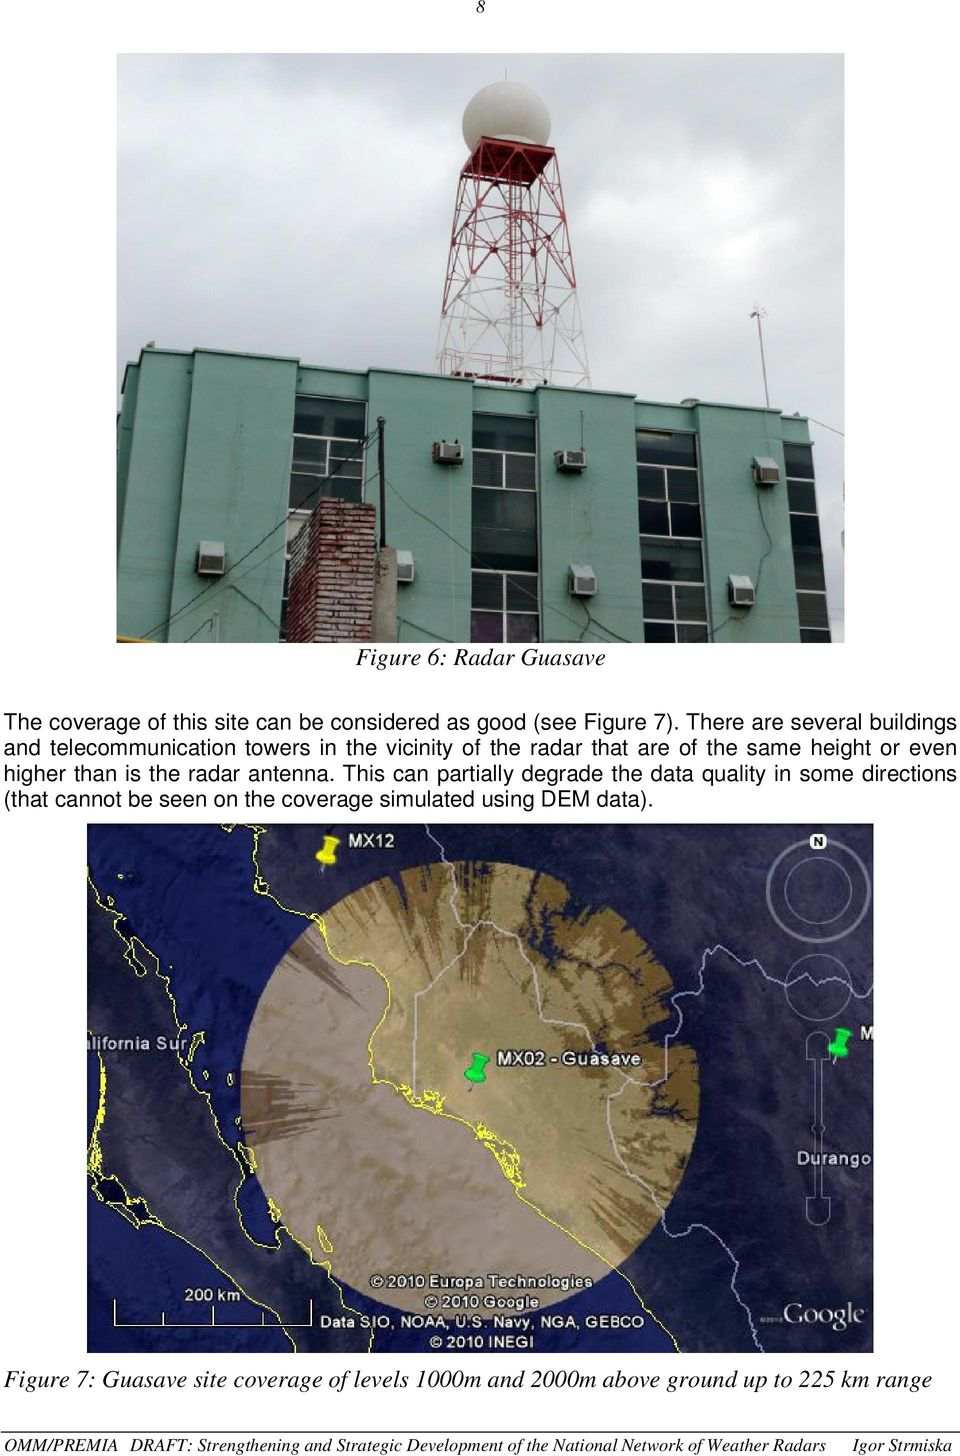 even higher than is the radar antenna.